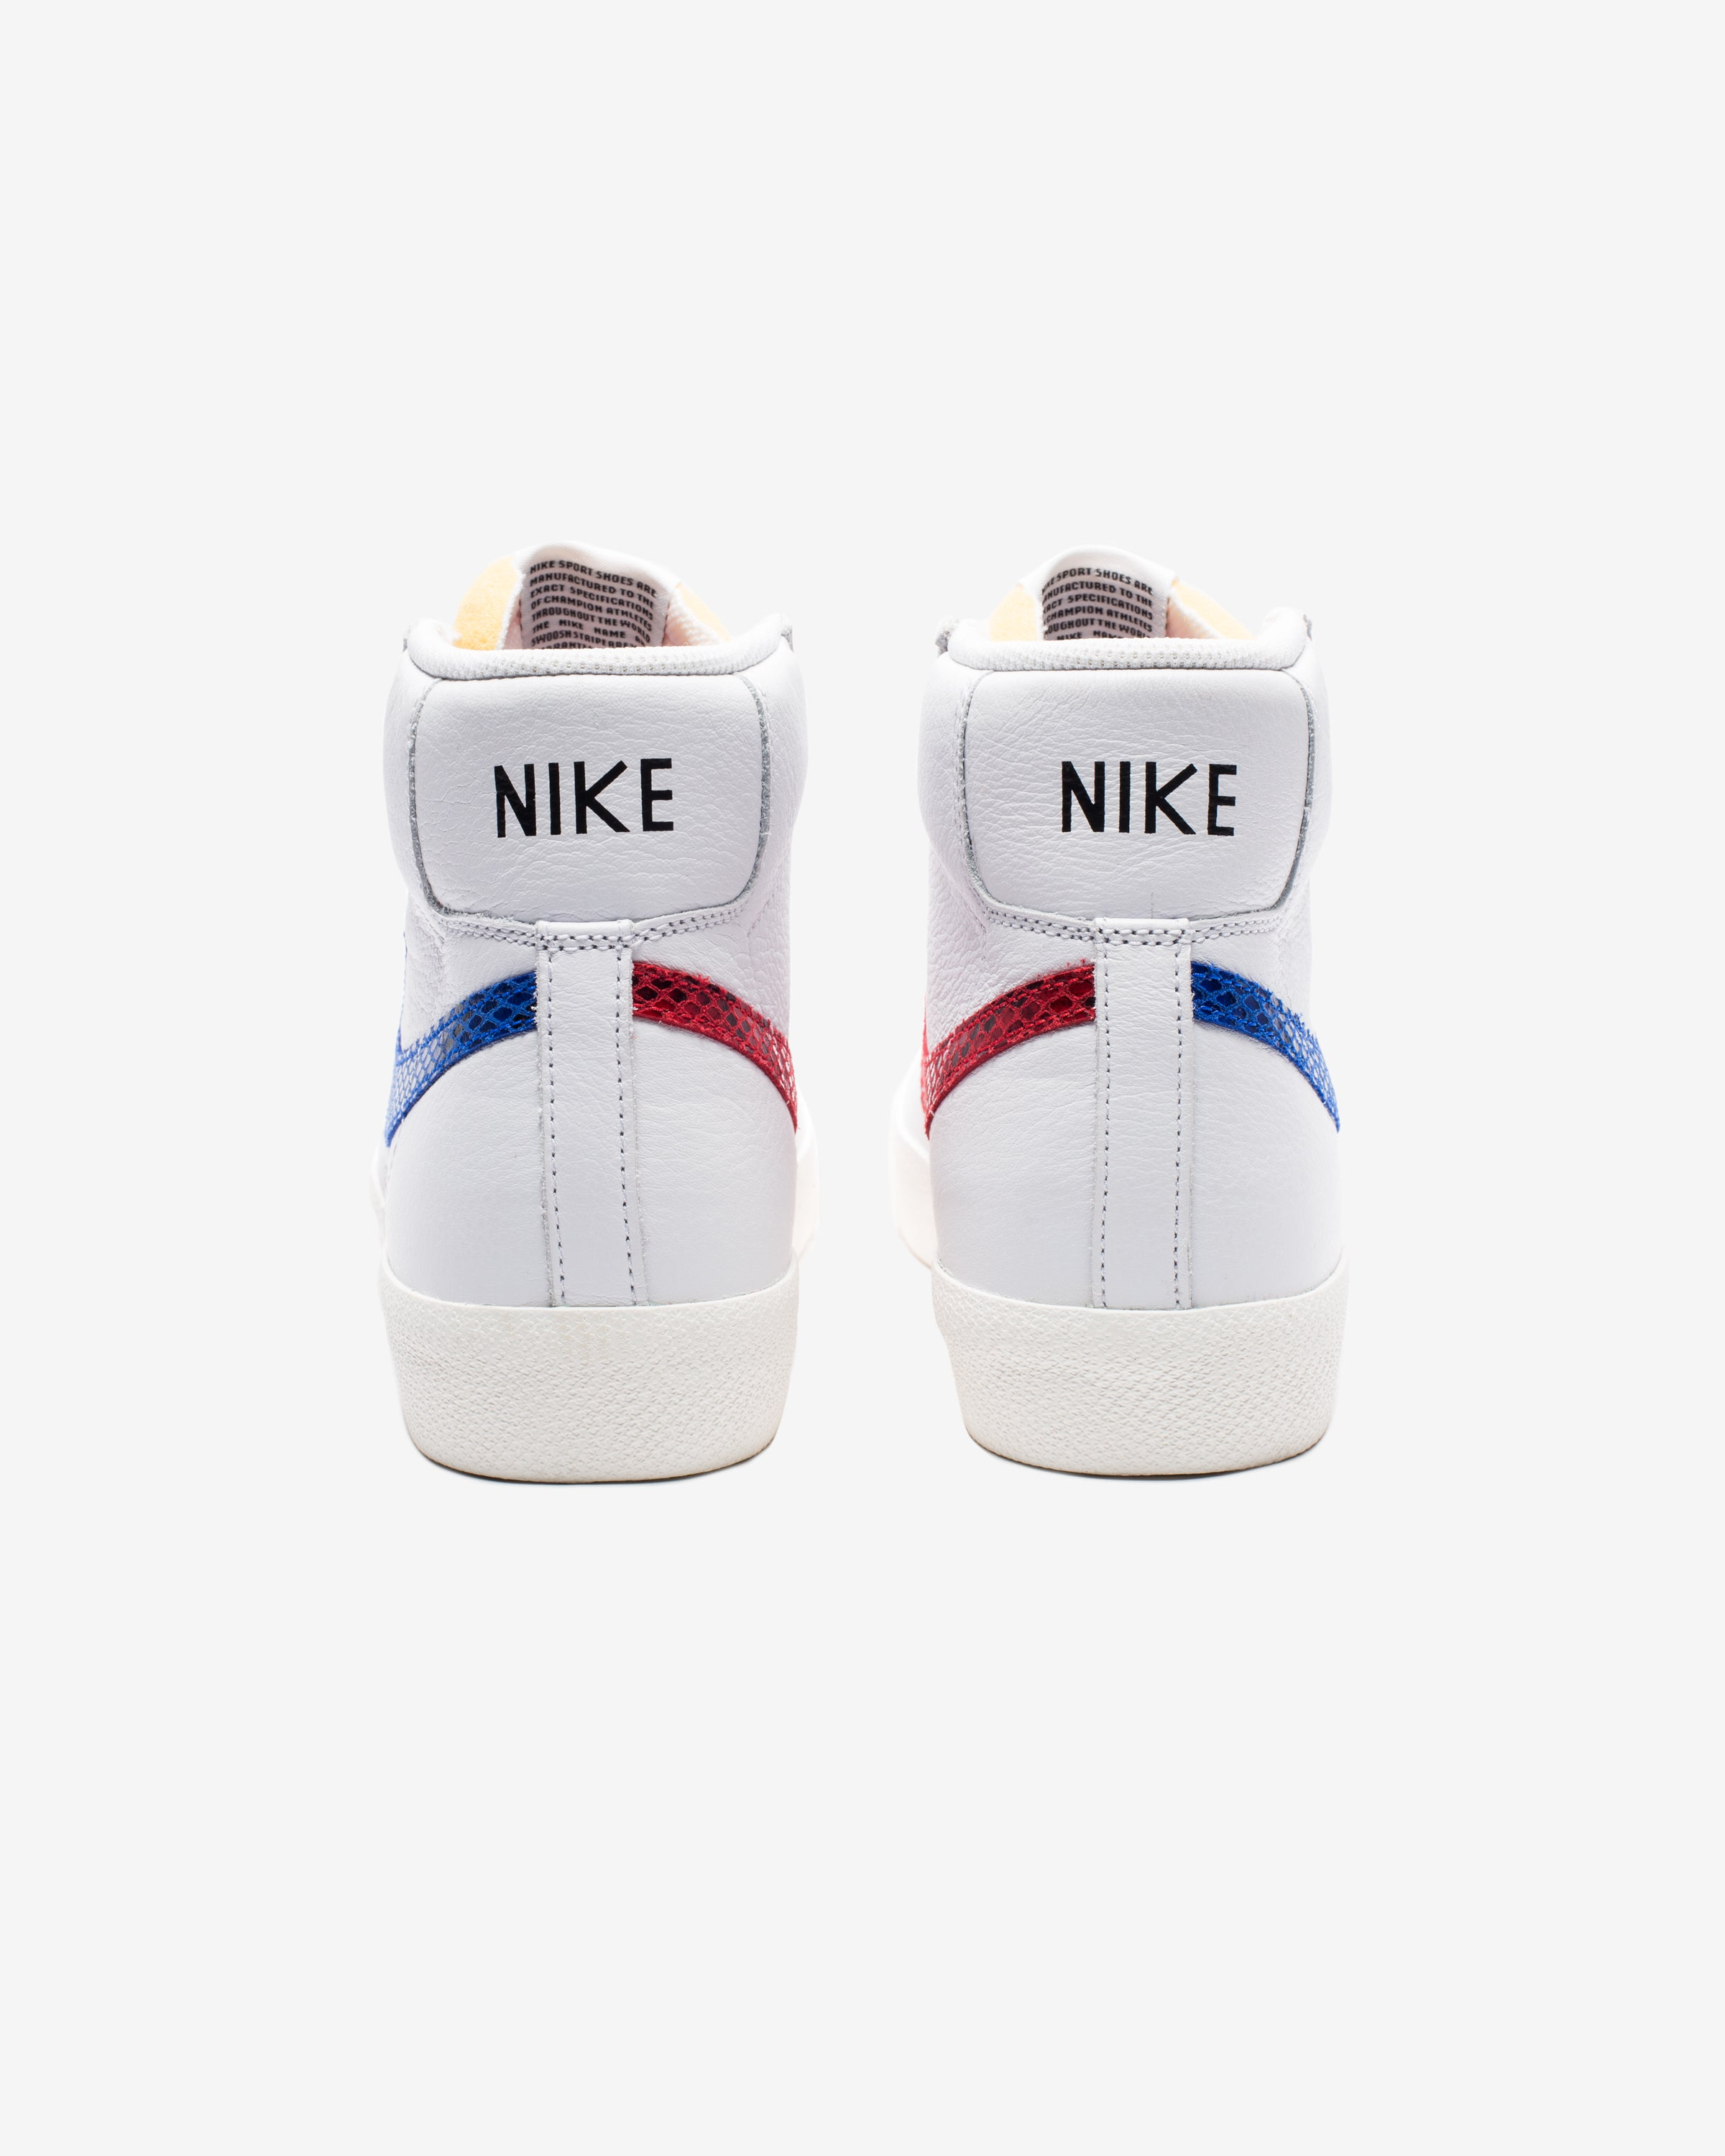 BLAZER MID '77 VINTAGE - WHITE/ RACERBLUE/ UNIVERSITYRED/ SAIL